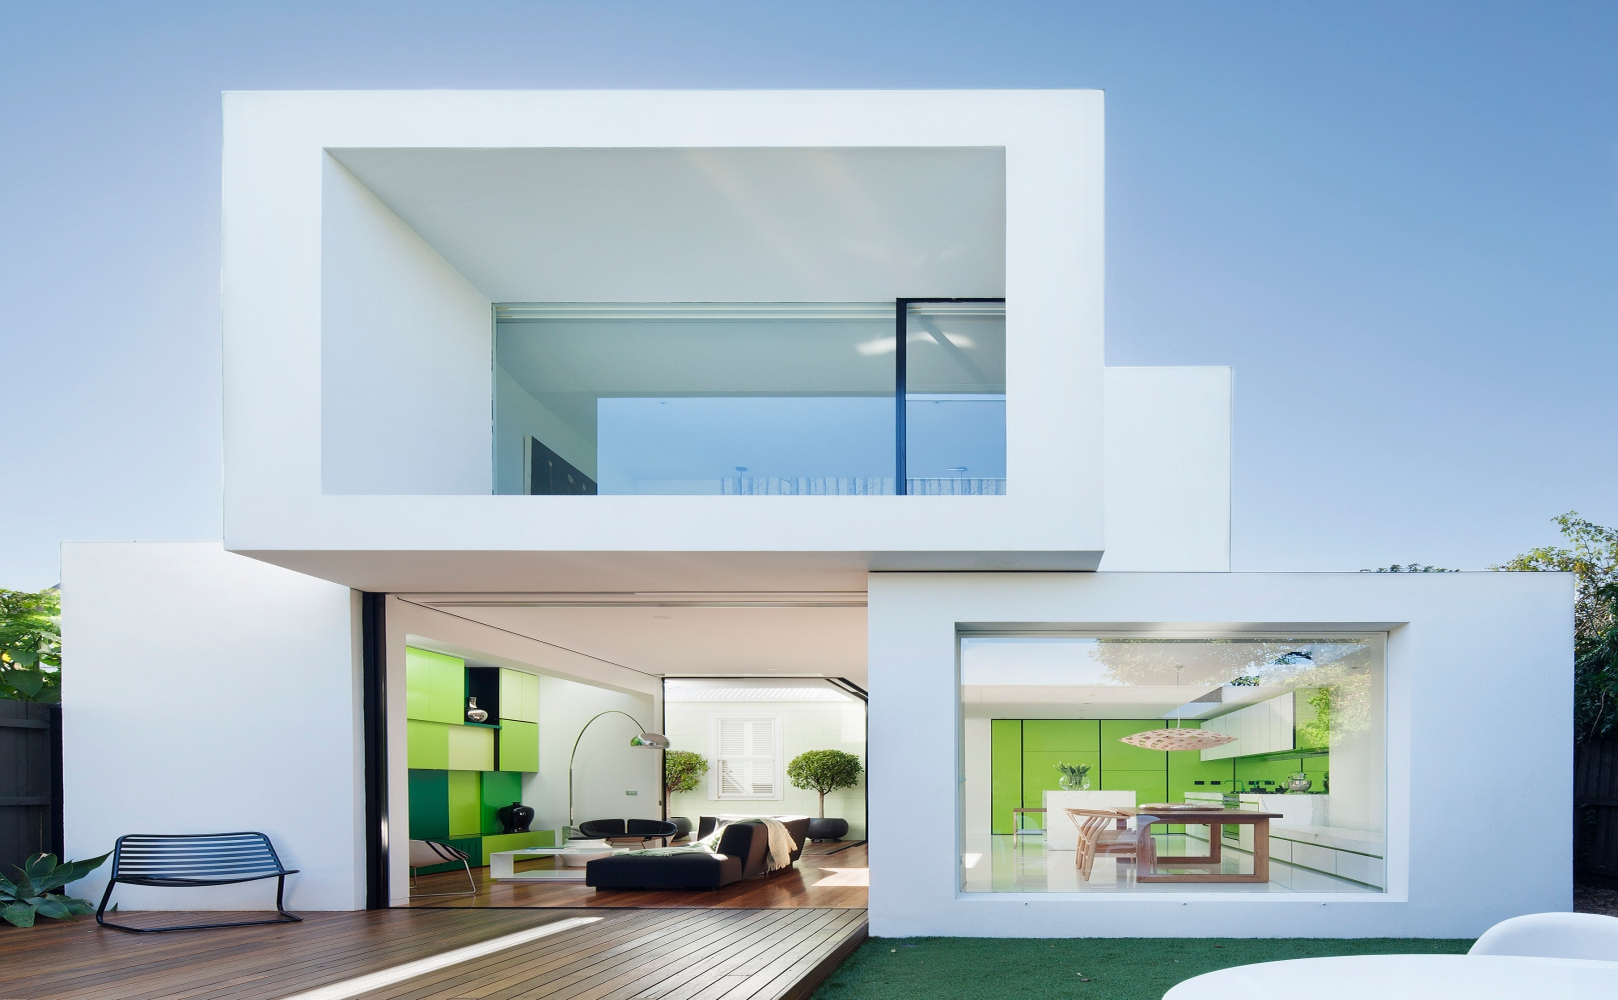 36 sml house levenbetts for Casa cubo minimalista